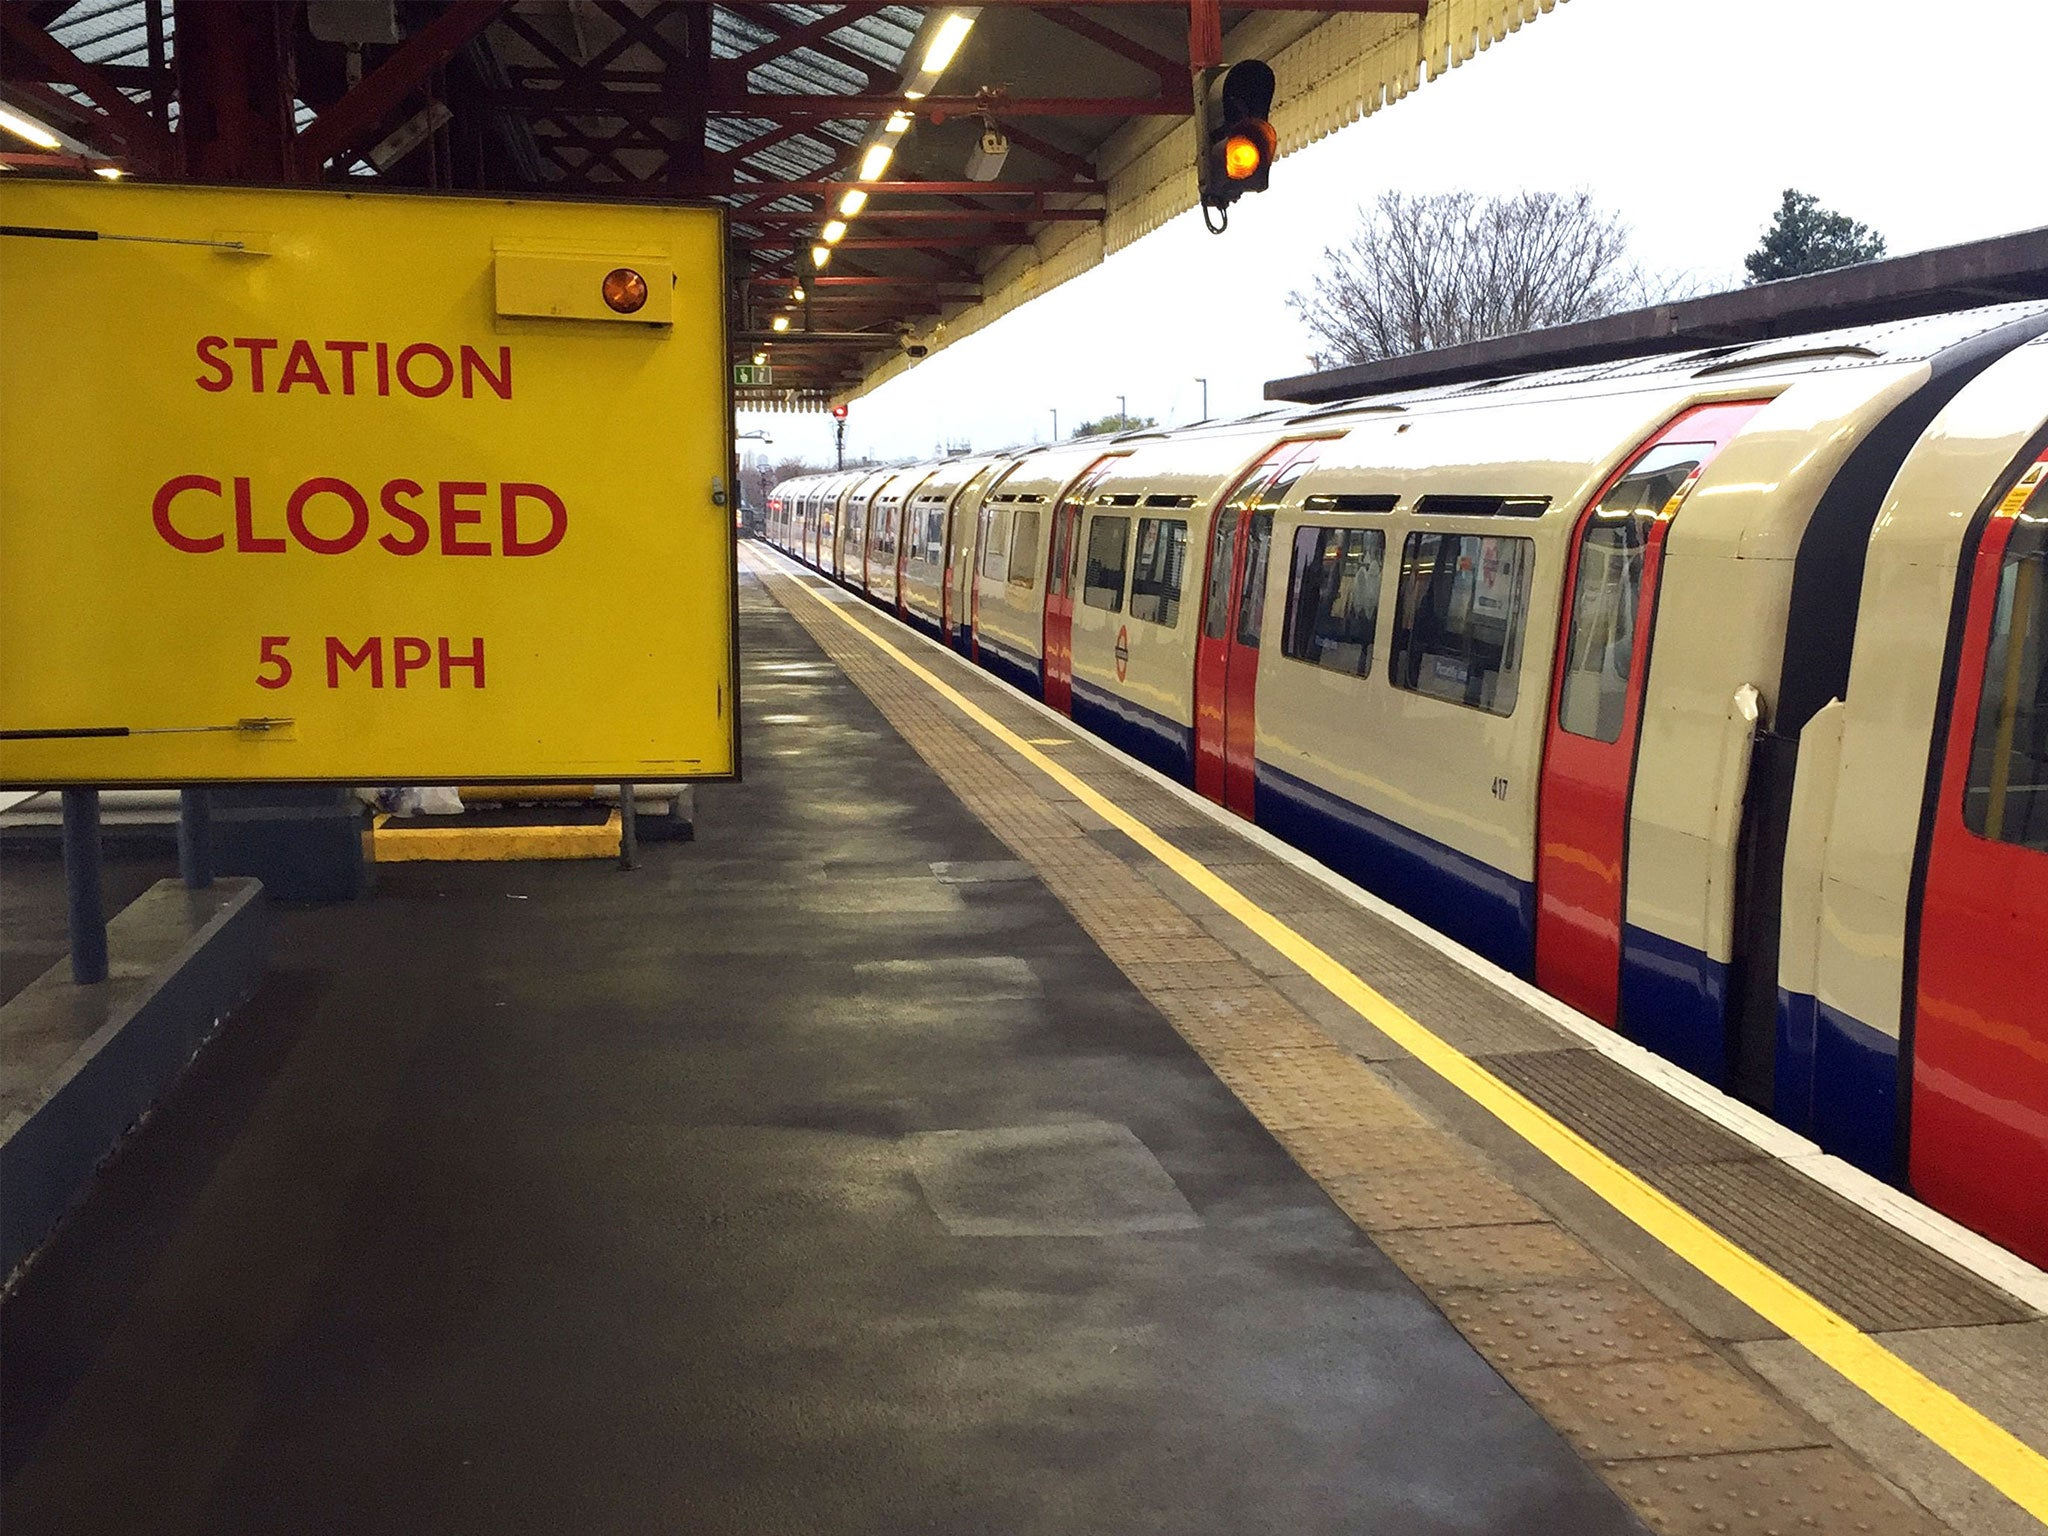 Tube strike: Everything you need to know about Piccadilly, Central and Waterloo and City line walkouts